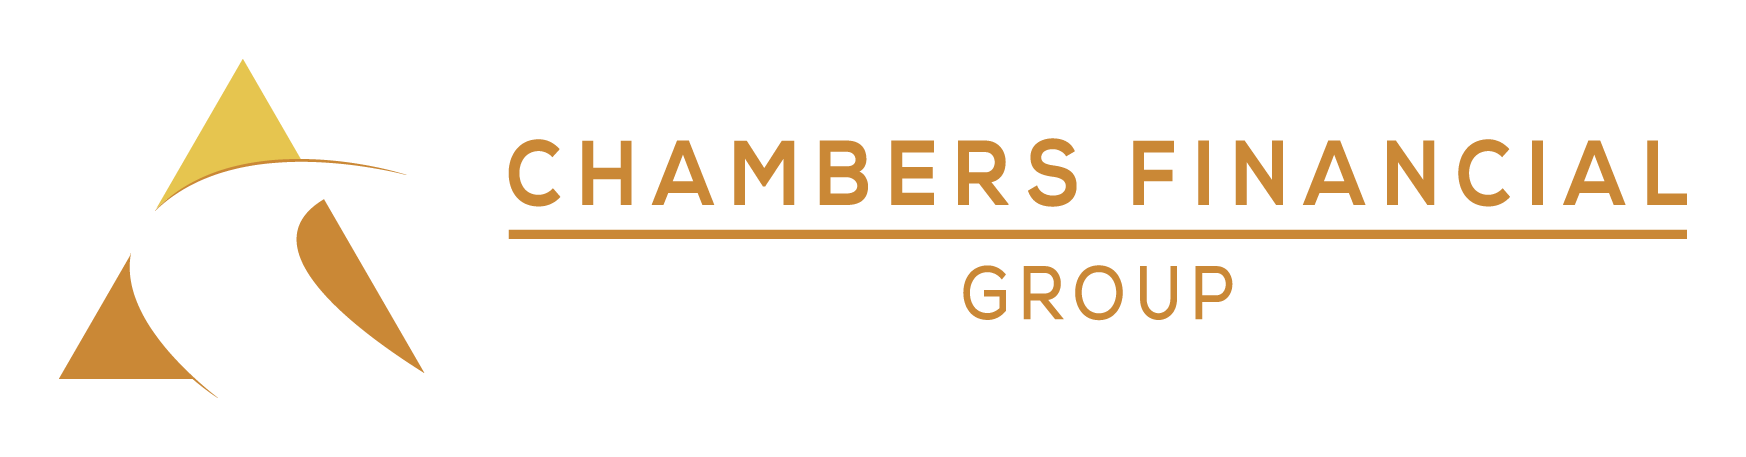 Chambers Financial Group